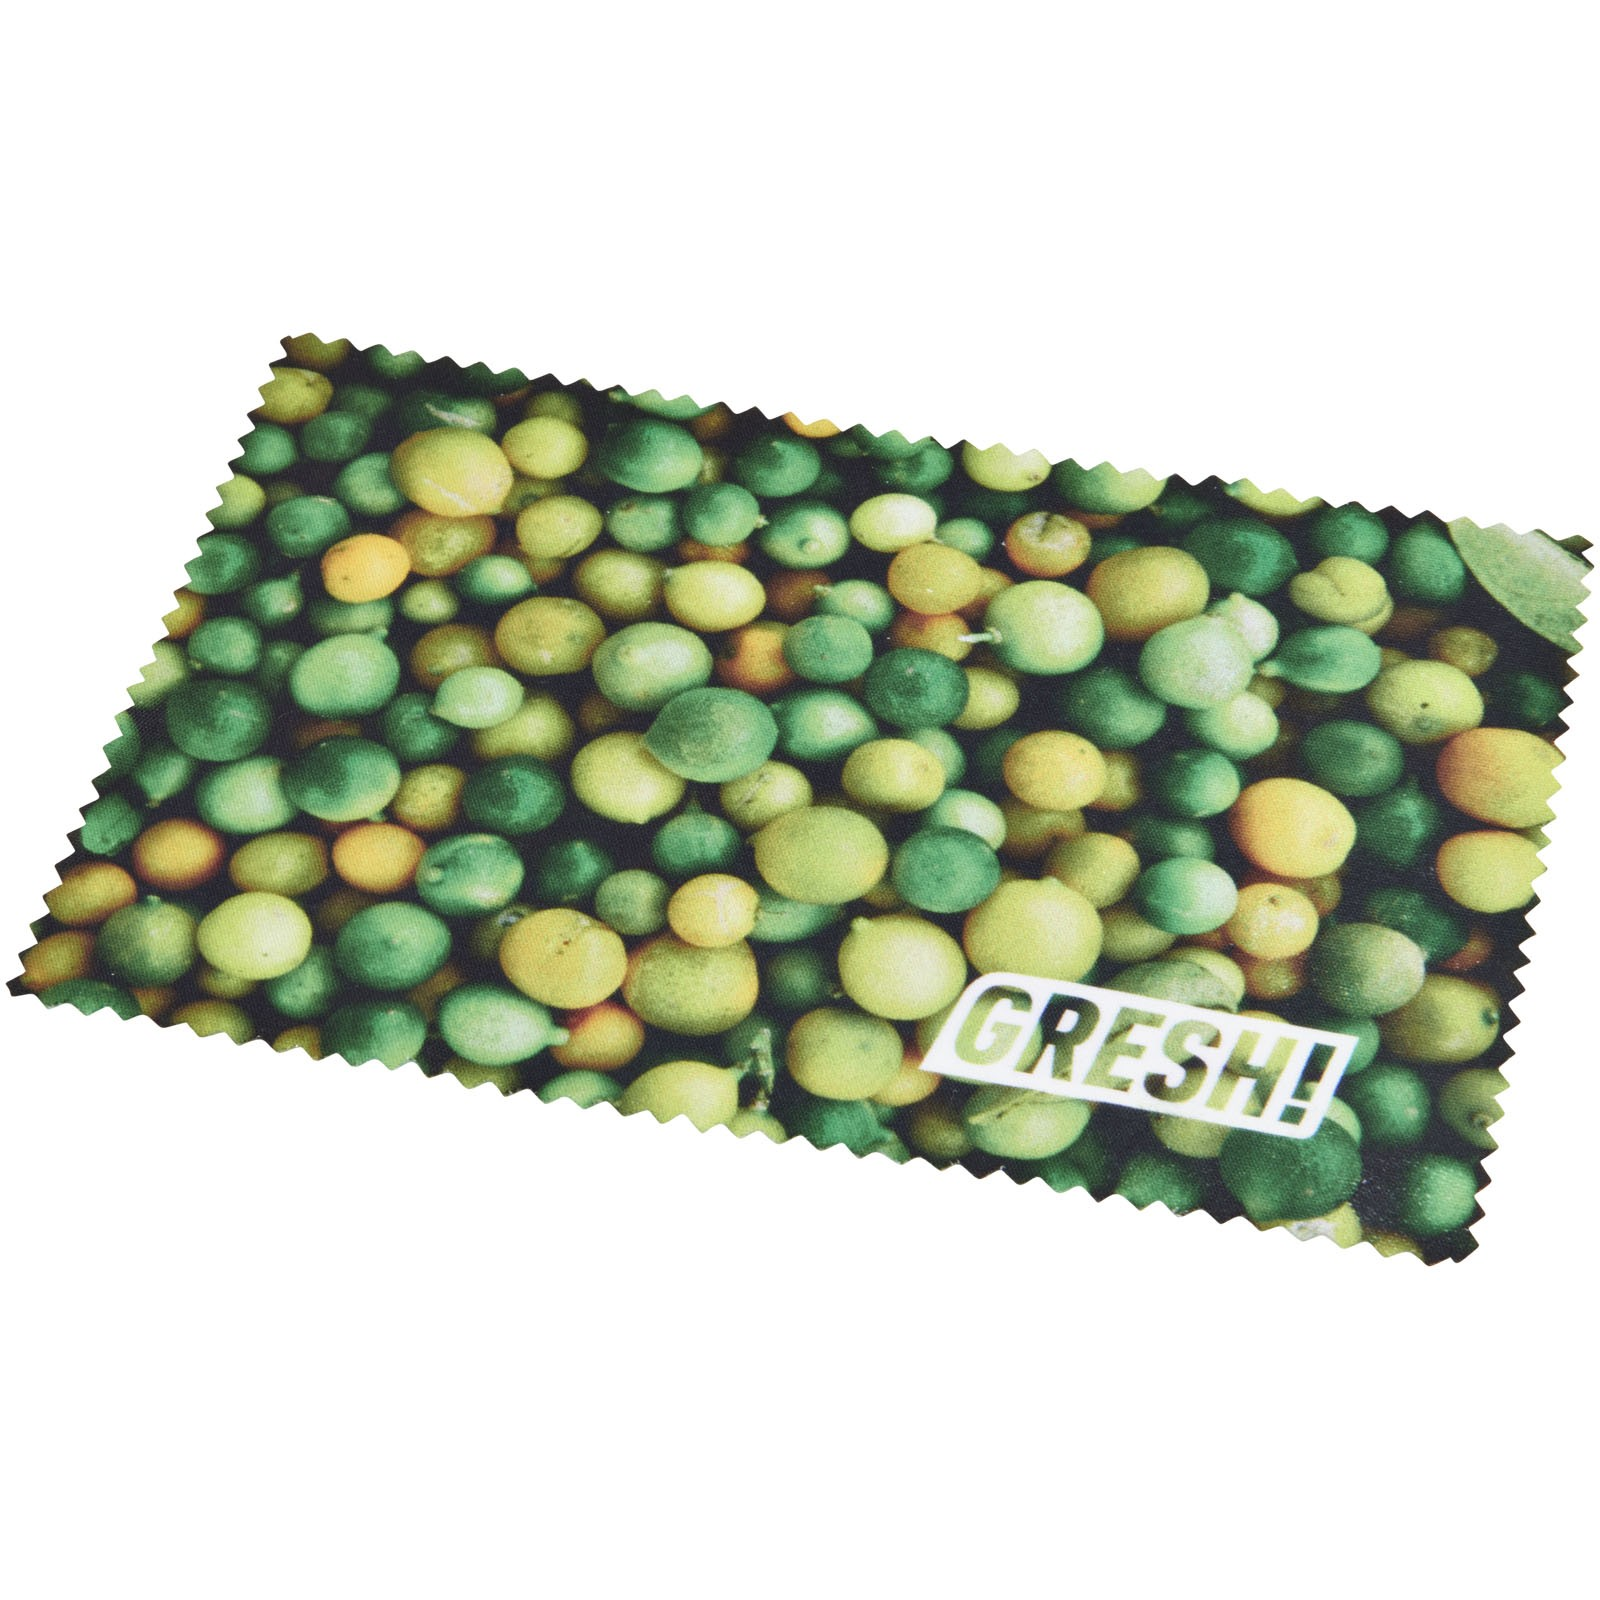 Caro sublimation cleaning cloth small